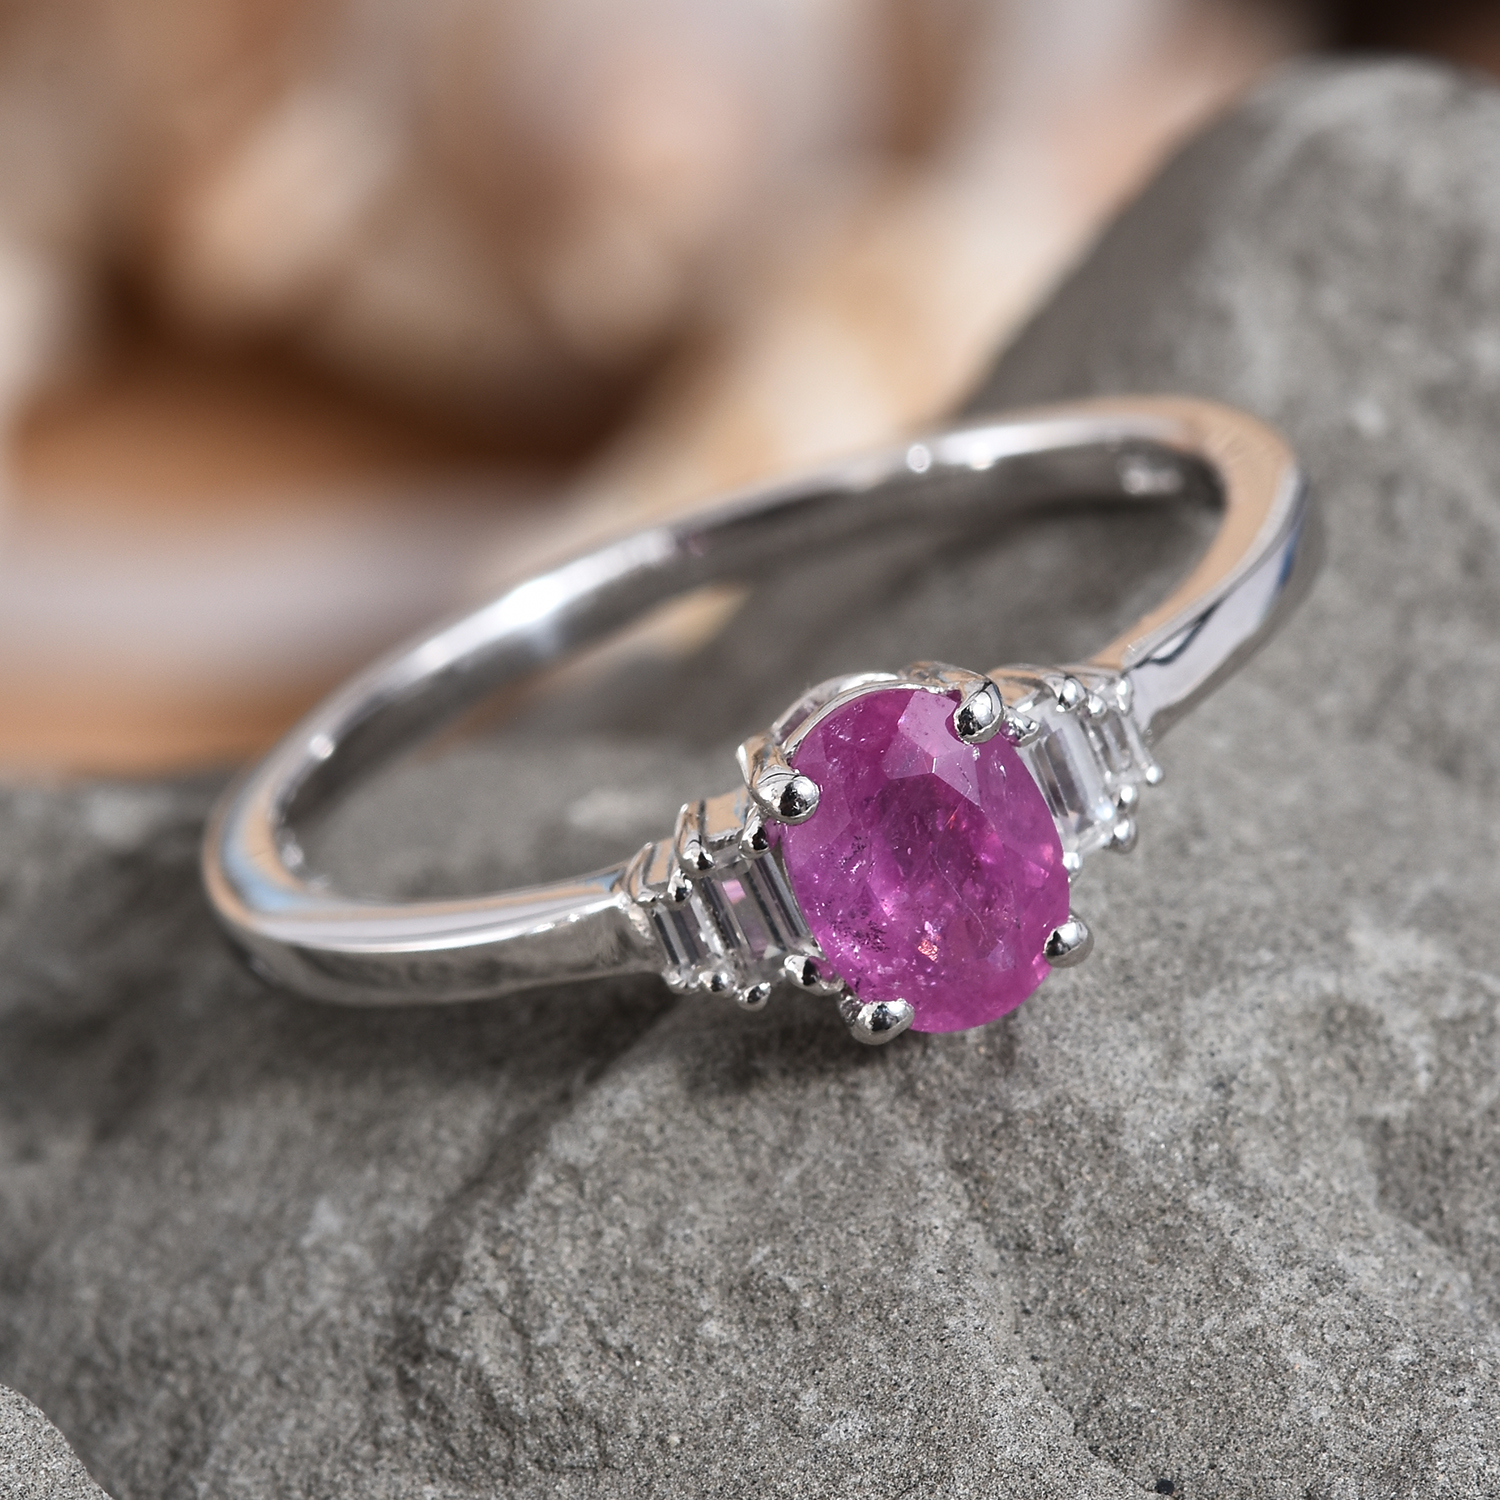 Ilakaka Hot Pink Sapphire, Cambodian Zircon Ring in Platinum Over Sterling Silver (Size 10.0) 1.56 ctw